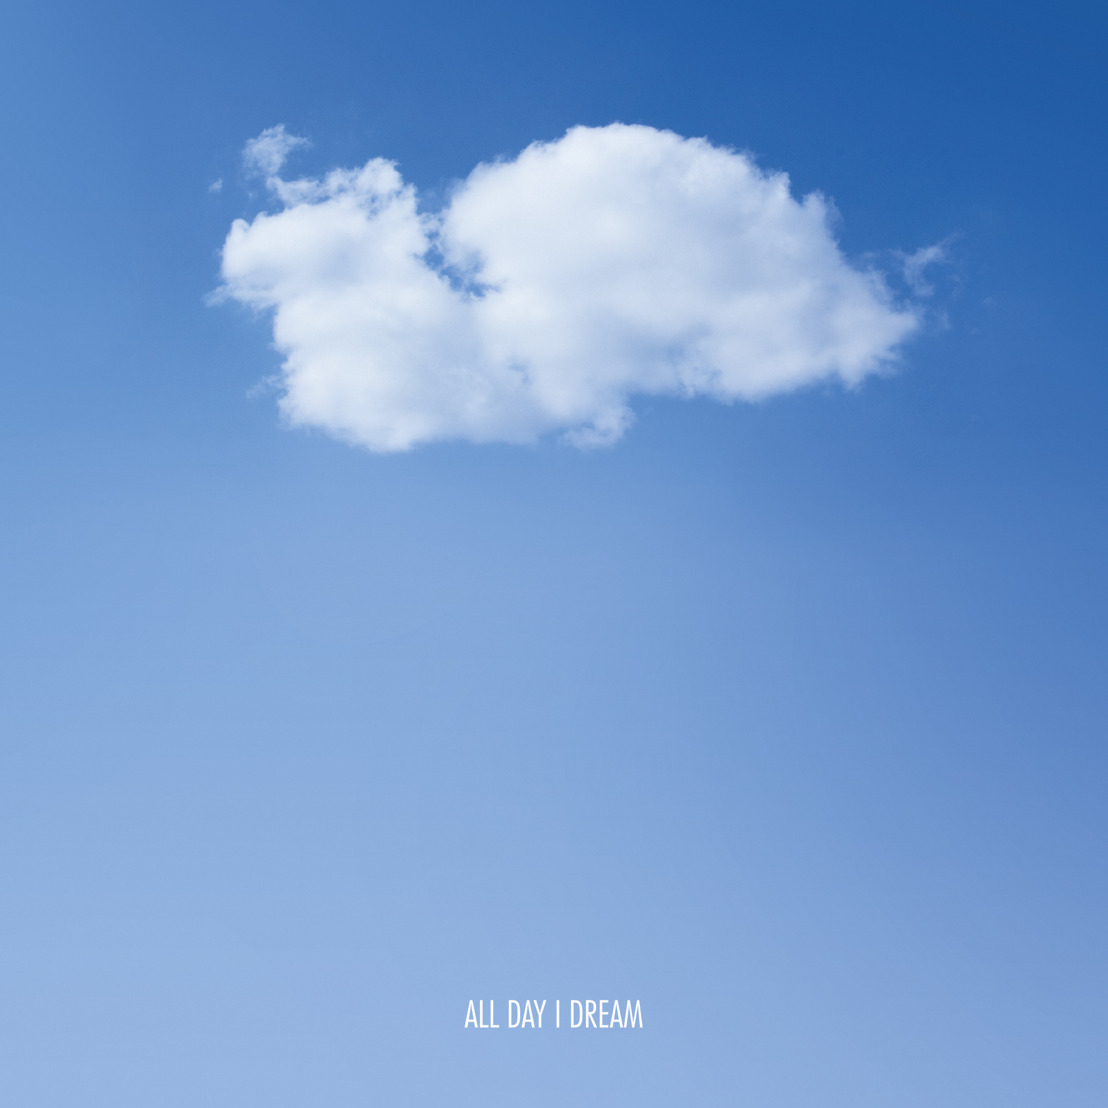 Newman Joins All Day I Dream family with The Long Journey EP